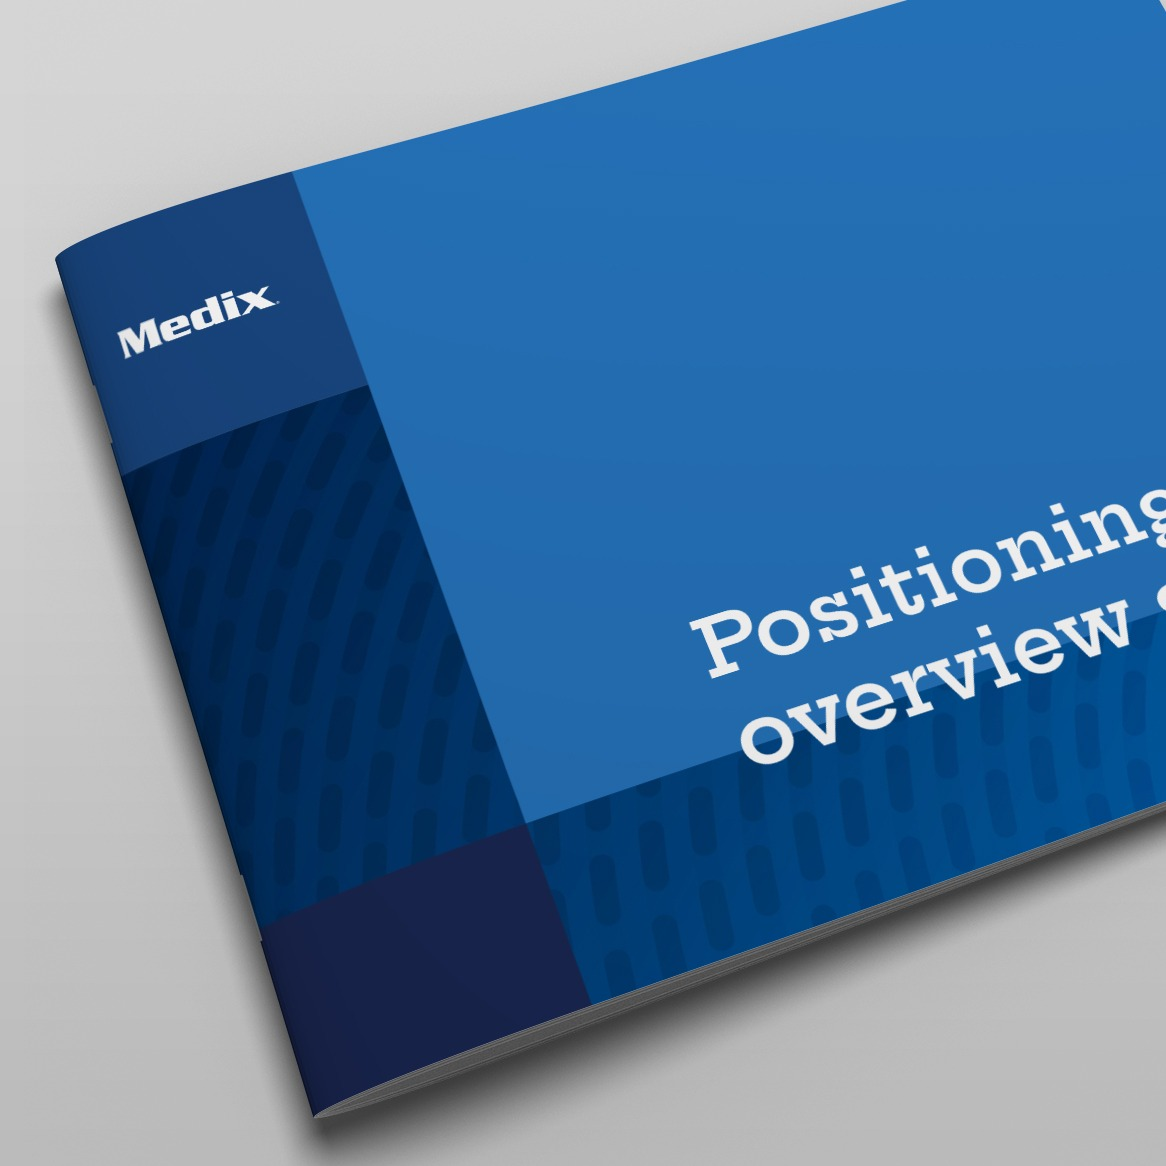 A booklet laying flat on a table, featuring Medix logo and deep blue colors